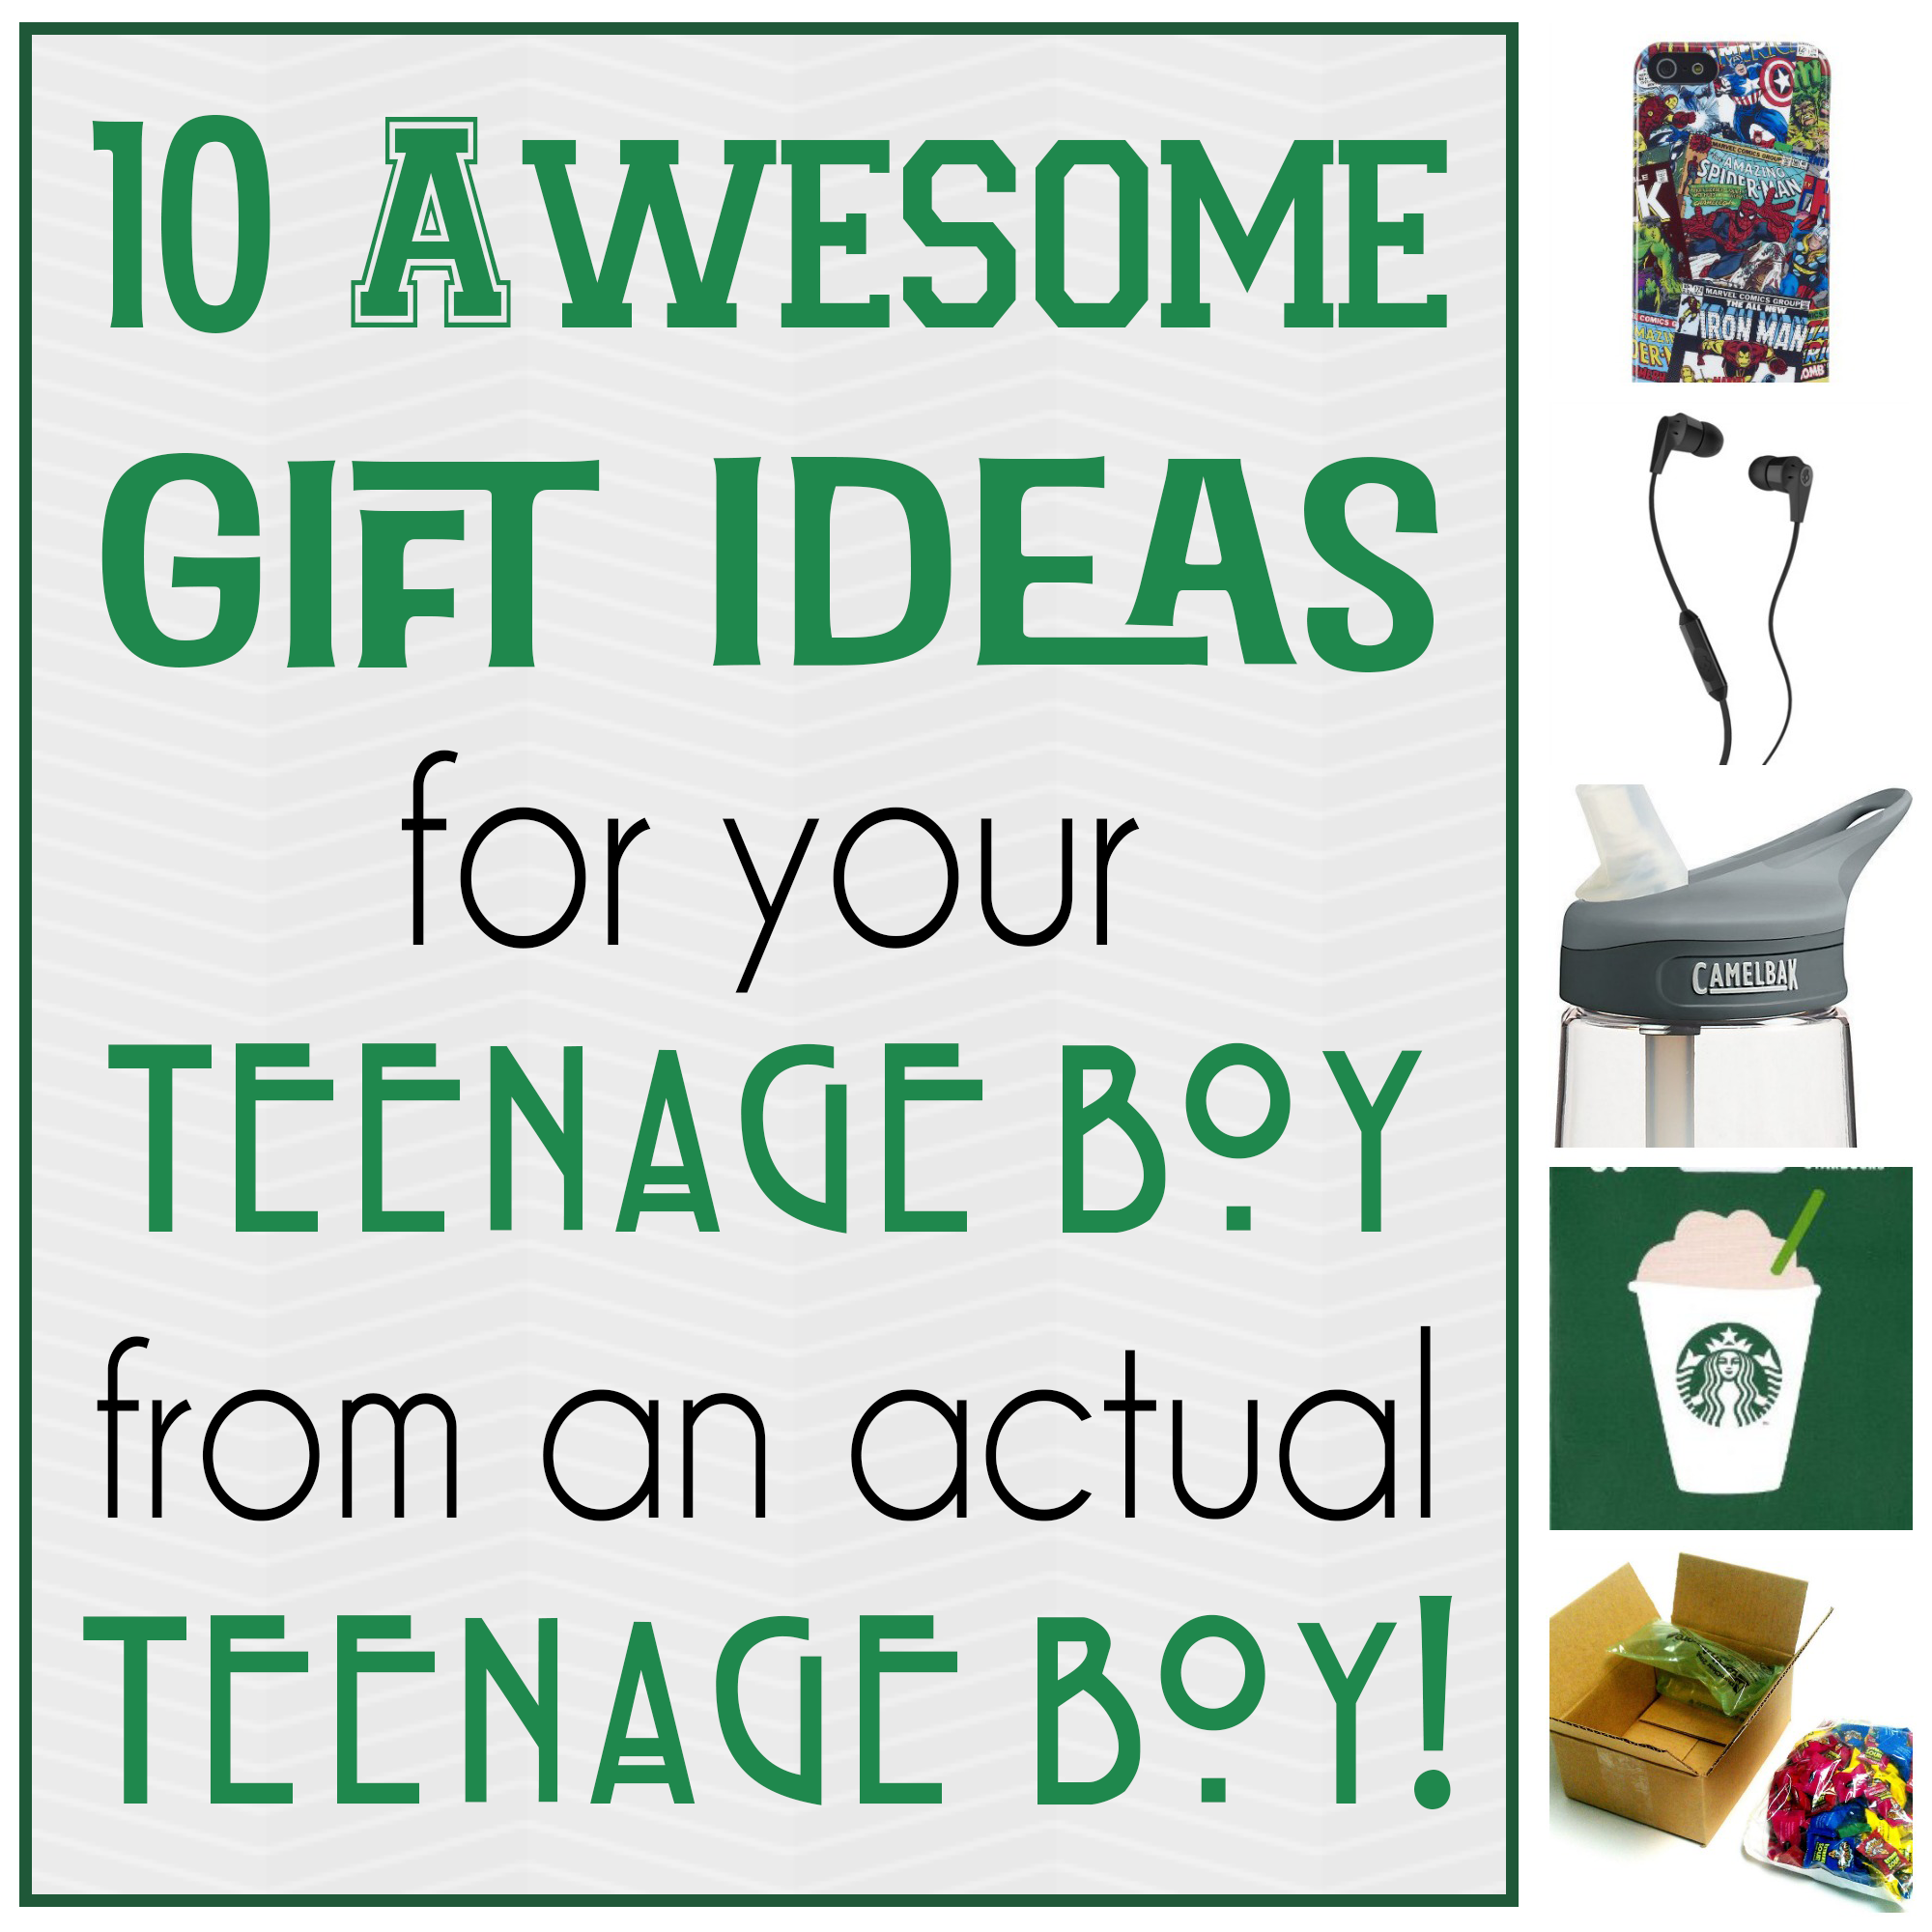 10 Awesome Gift Ideas for Teenage Boys